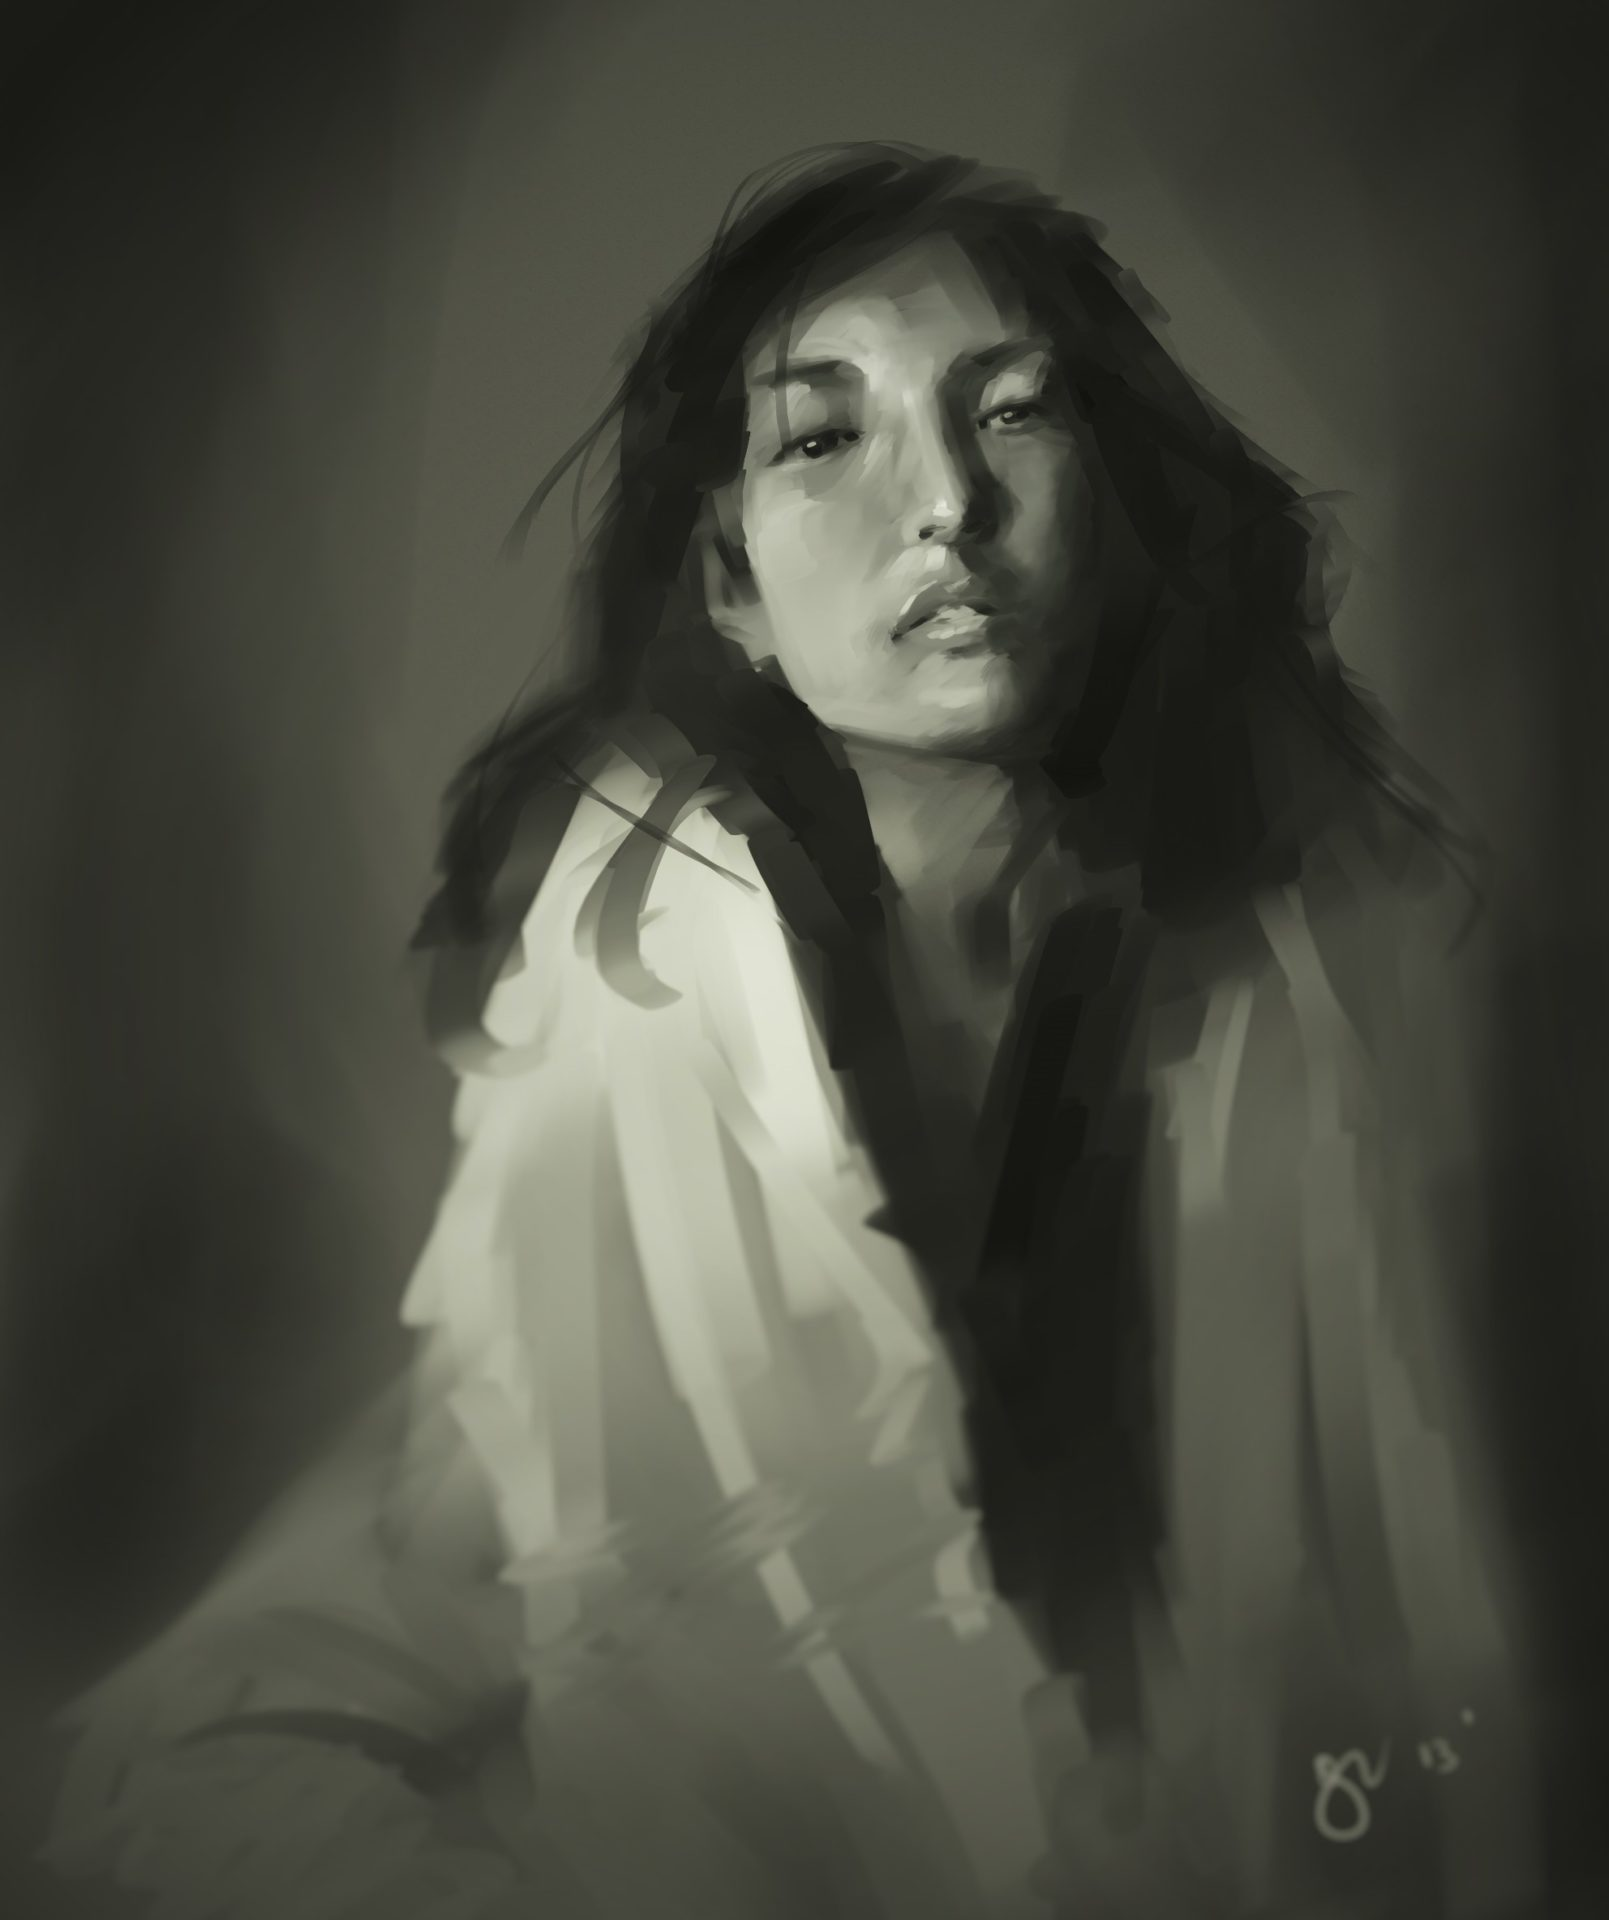 Study from photo reference.